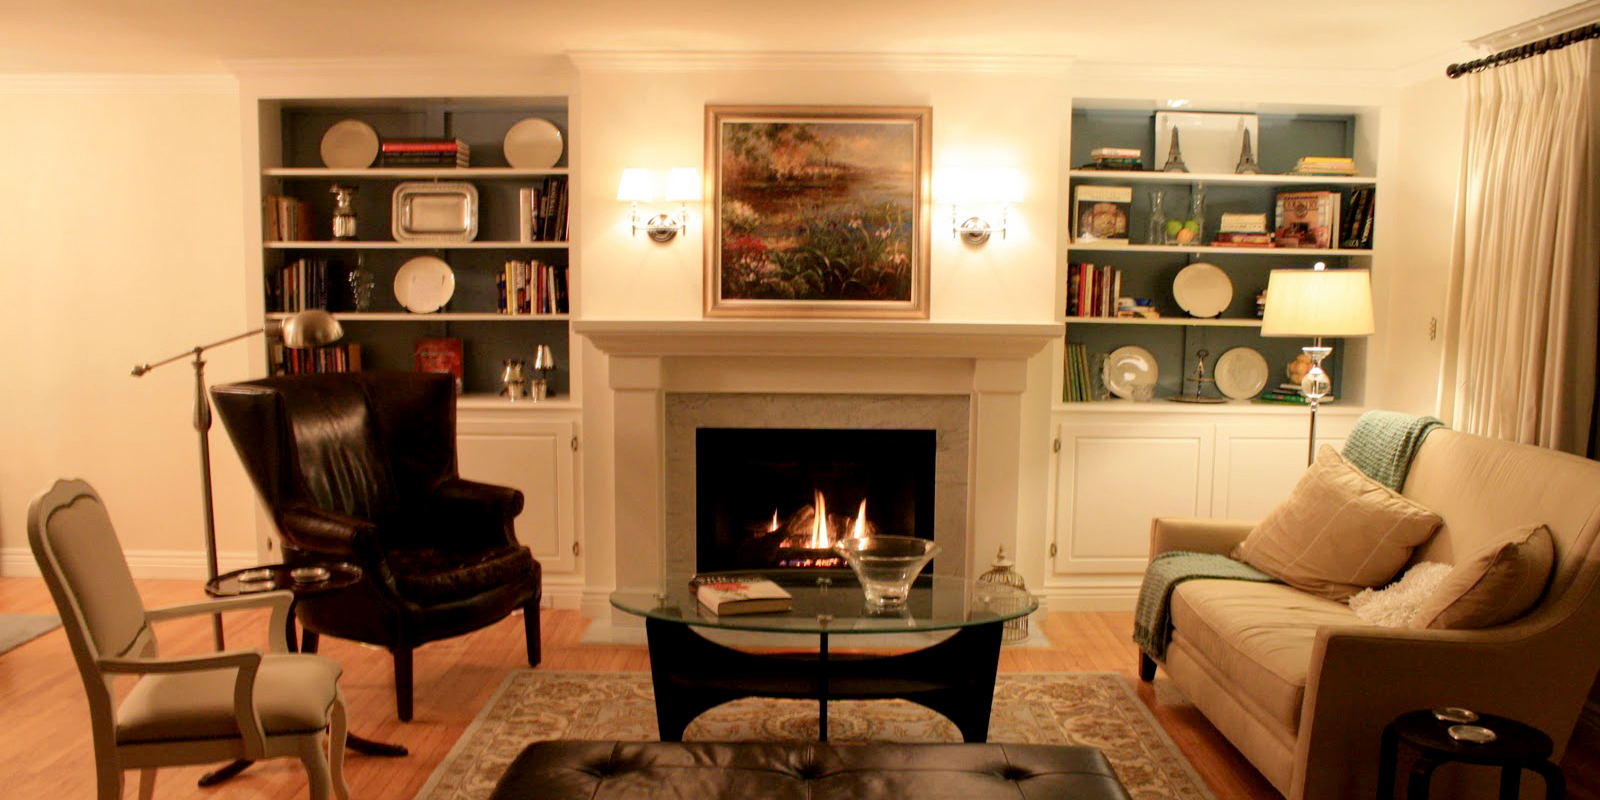 Beautiful Remodelaholic | Living Room Remodel, Adding A Fireplace And Built In  Bookshelves Design Inspirations